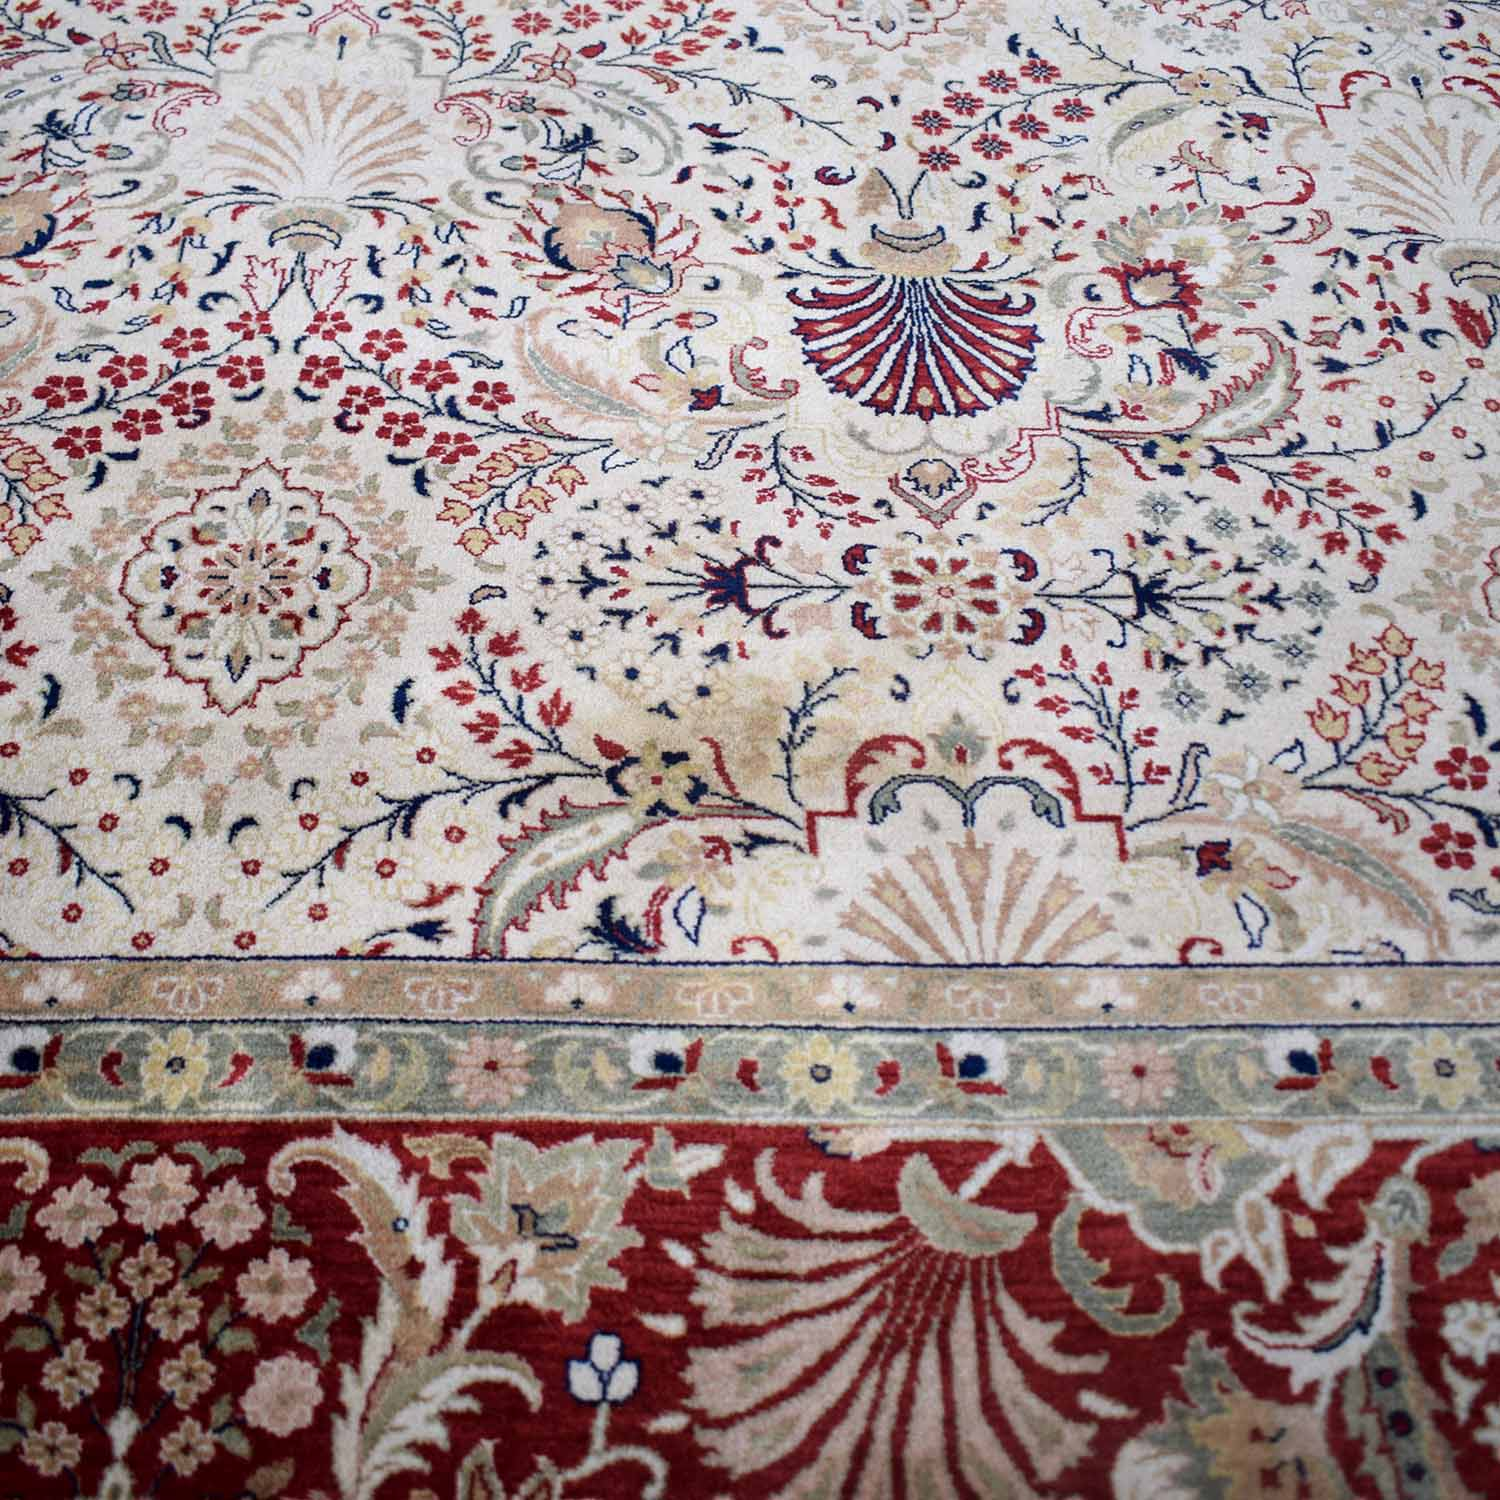 ABC Carpet & Home ABC Carpet & Home Indian Tabriz Rug second hand